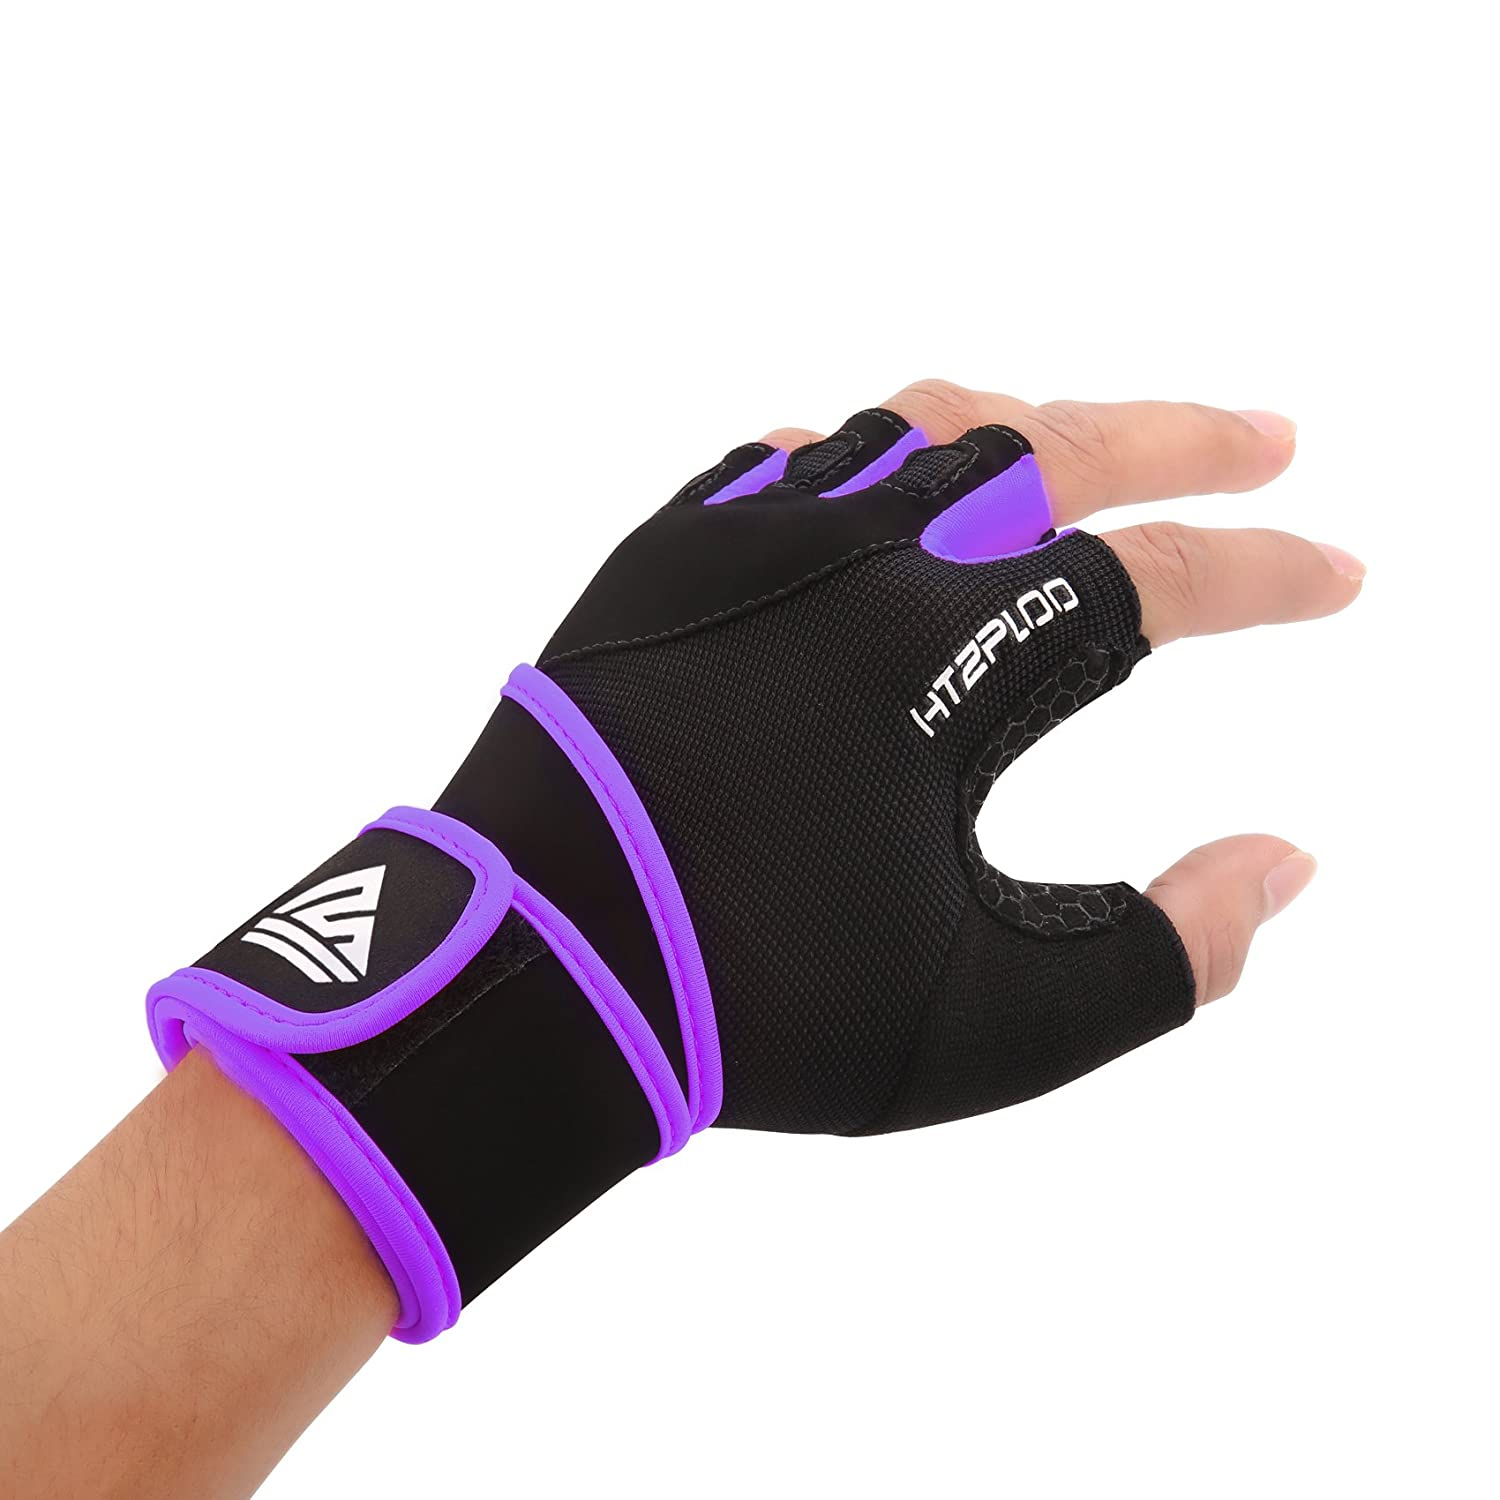 HTZPLOO Weight Lifting Gloves Workout Gloves with Wrist Wraps,Full Palm Pad /& Enhanced Grip for Bodybuilding,Gym,Cross Fit,Fitness,Training Exercise Men /& Women